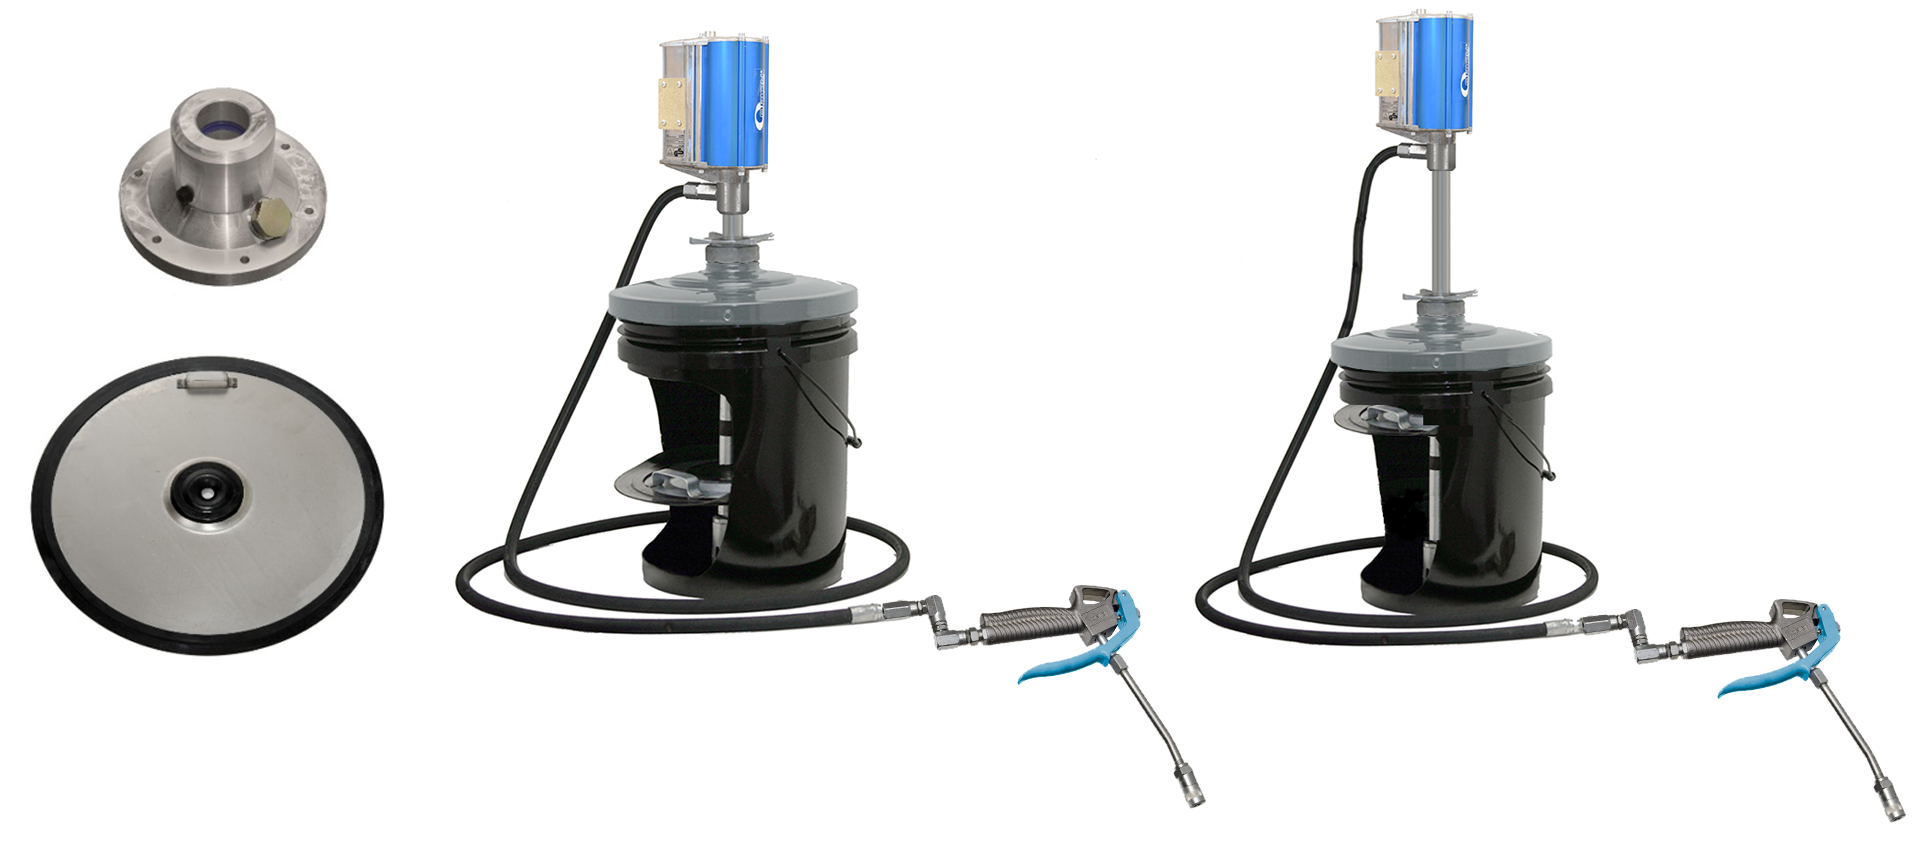 Accessories for grease pumps